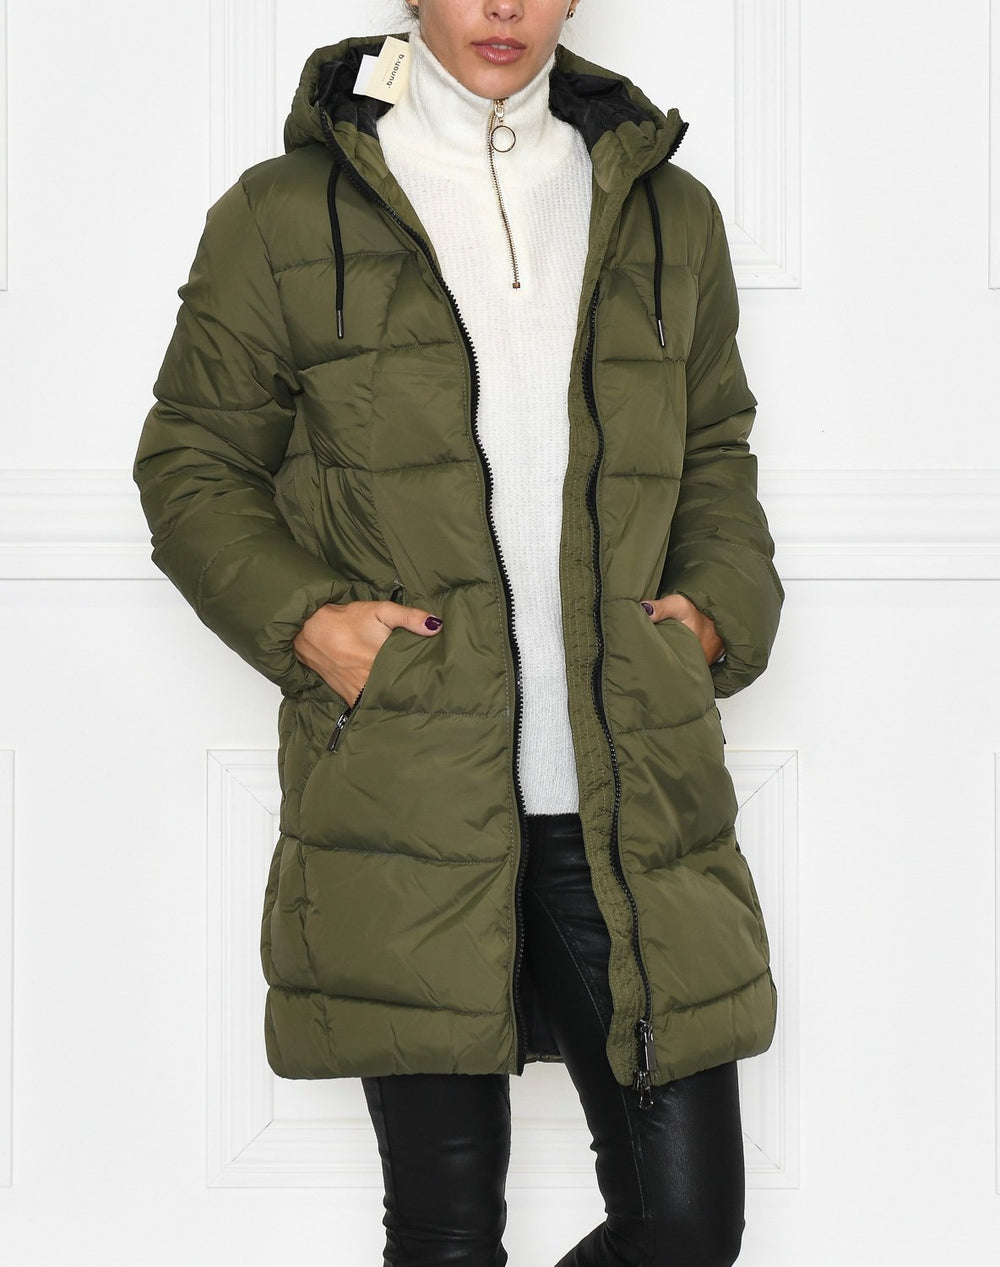 B.Young BYBomina ZP jacket 2 olive night - Online-Mode